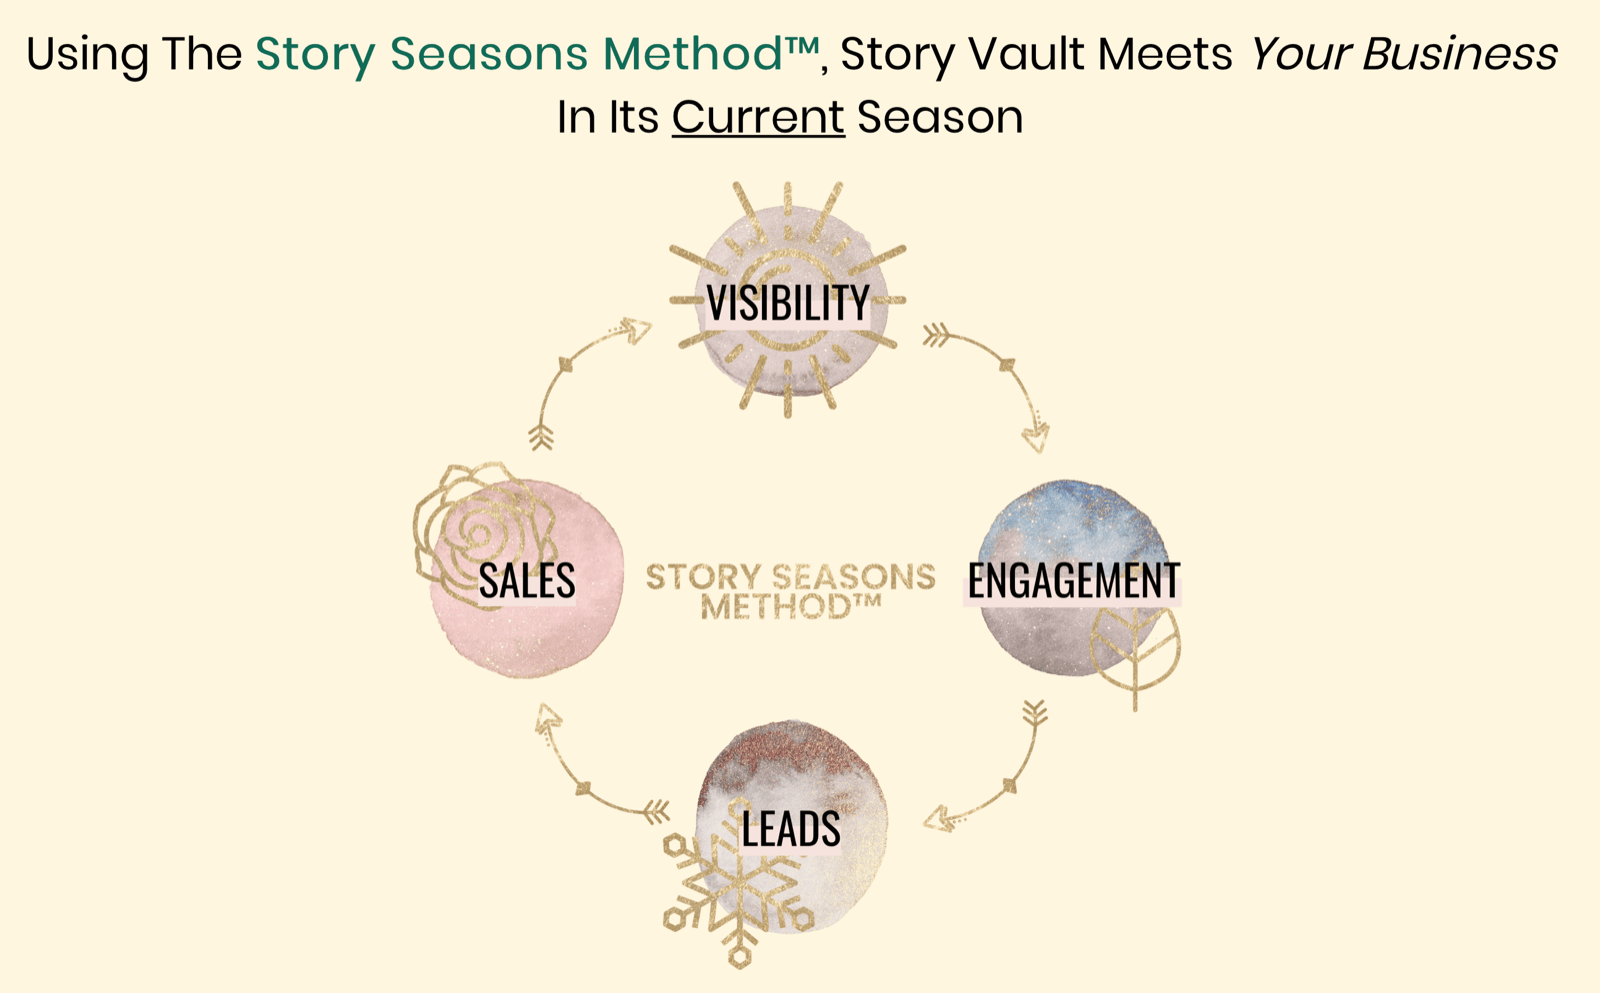 graphic showing the Story Seasons Method